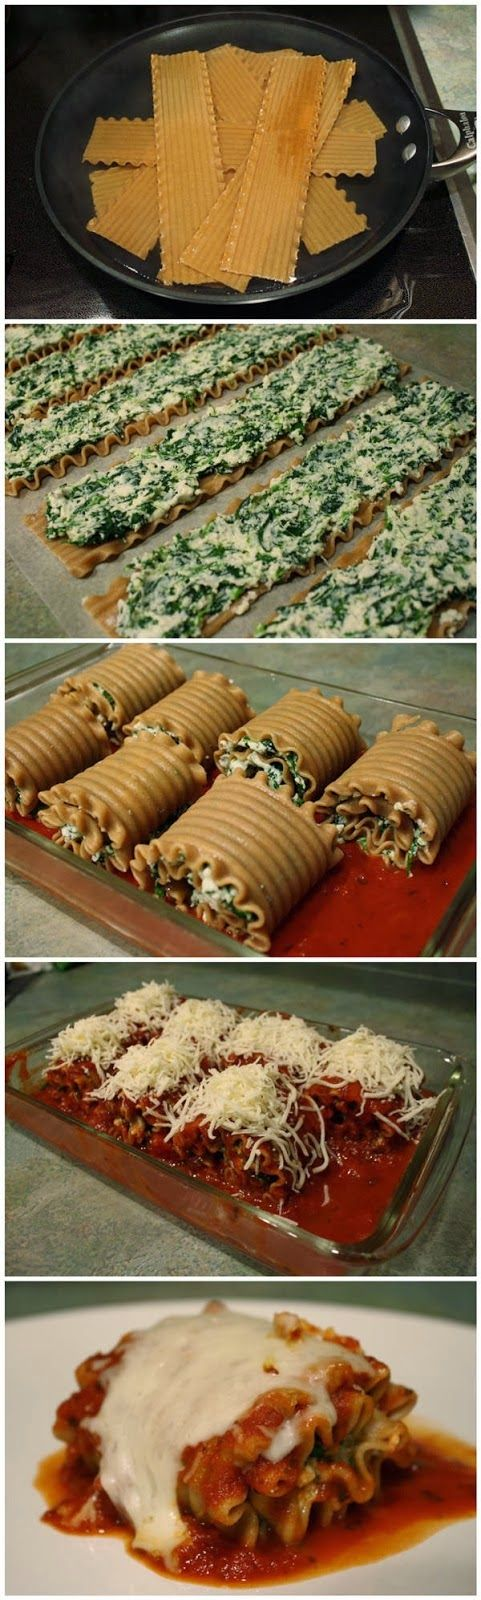 Skinny Lasagna Rolls - everrecipes (this is the direct link to the recipe)